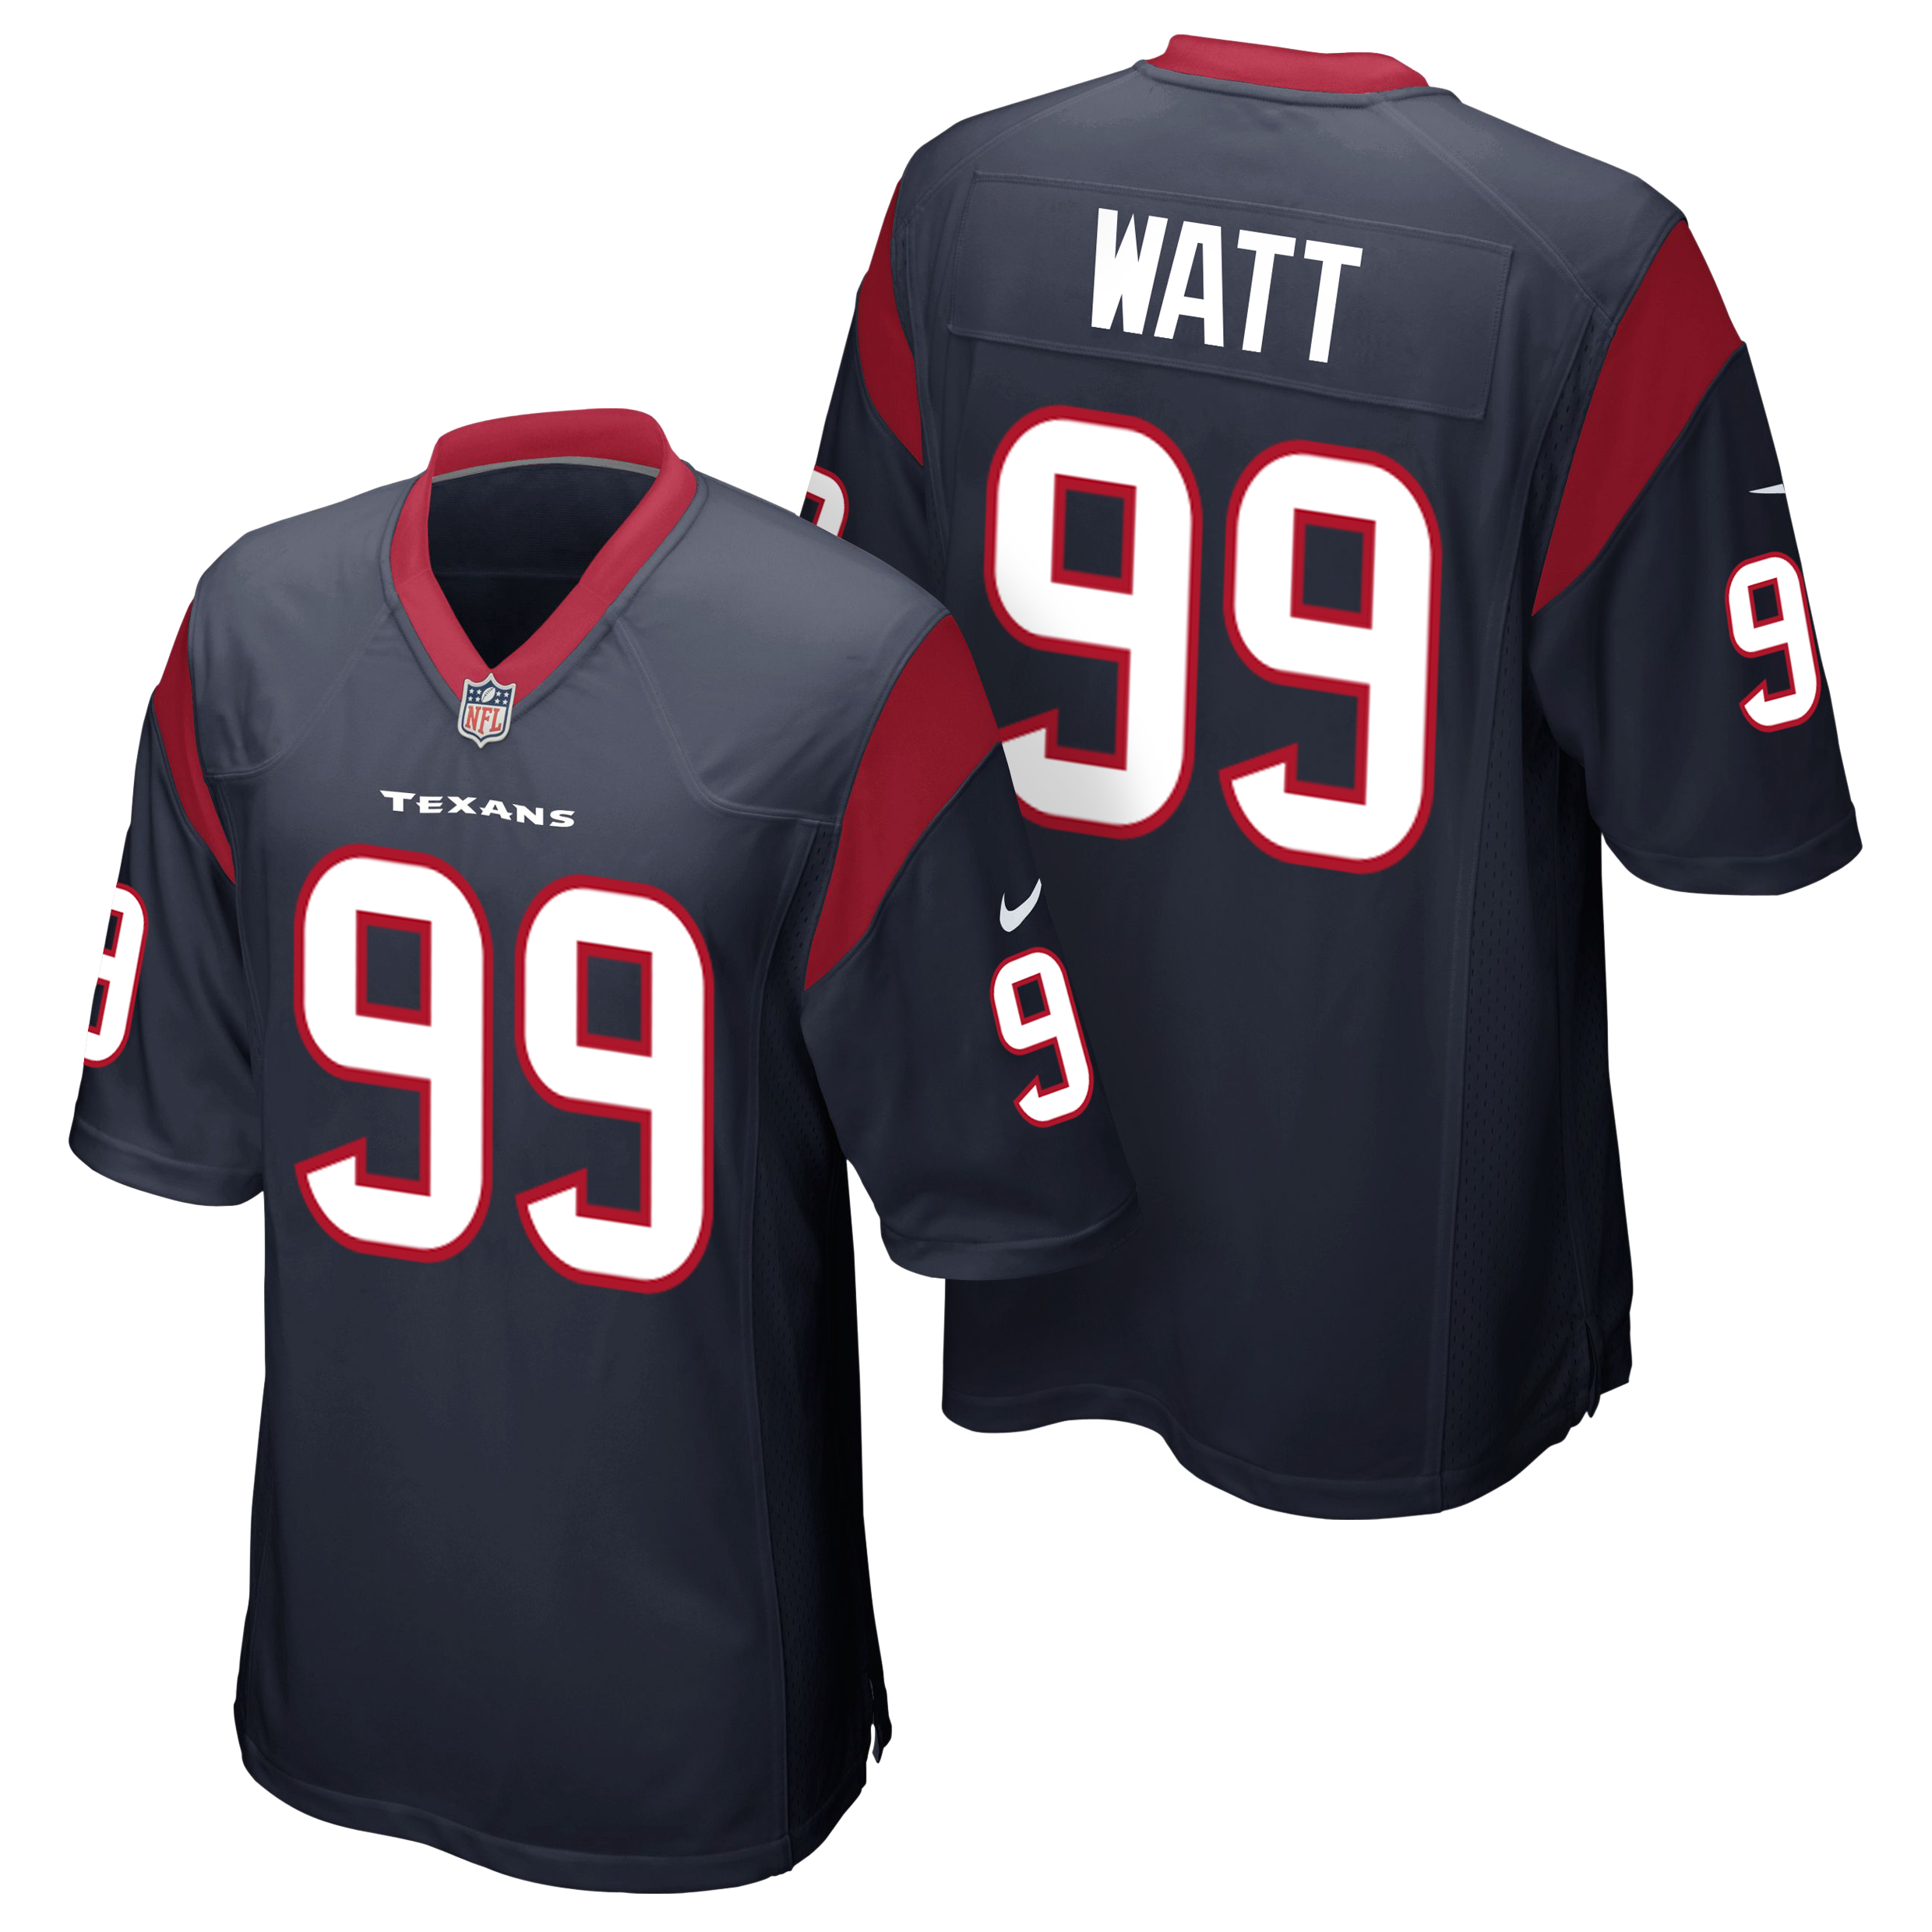 Houston Texans Home Game Jersey - JJ Watt